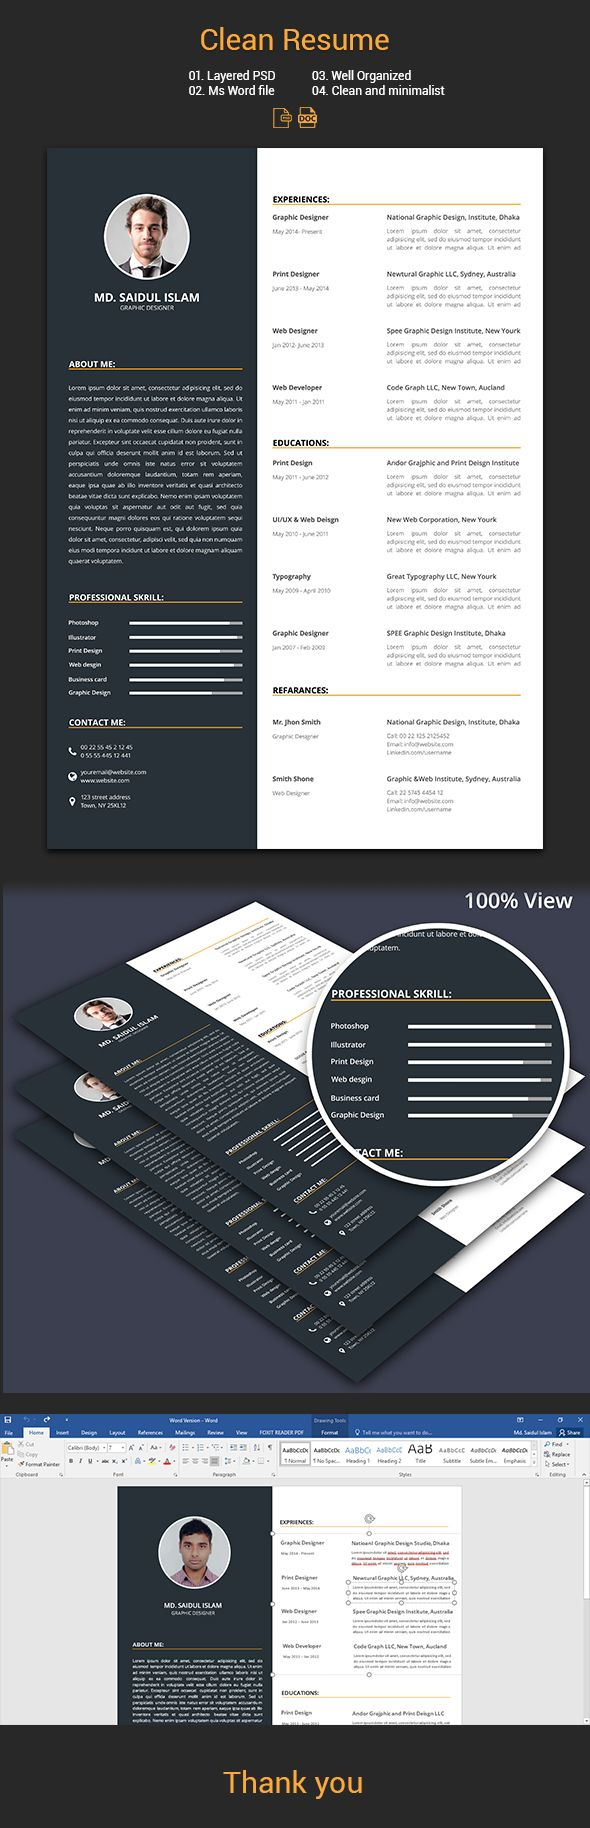 download job resume format%0A Get the best  resume  cv for your own business and  job interview